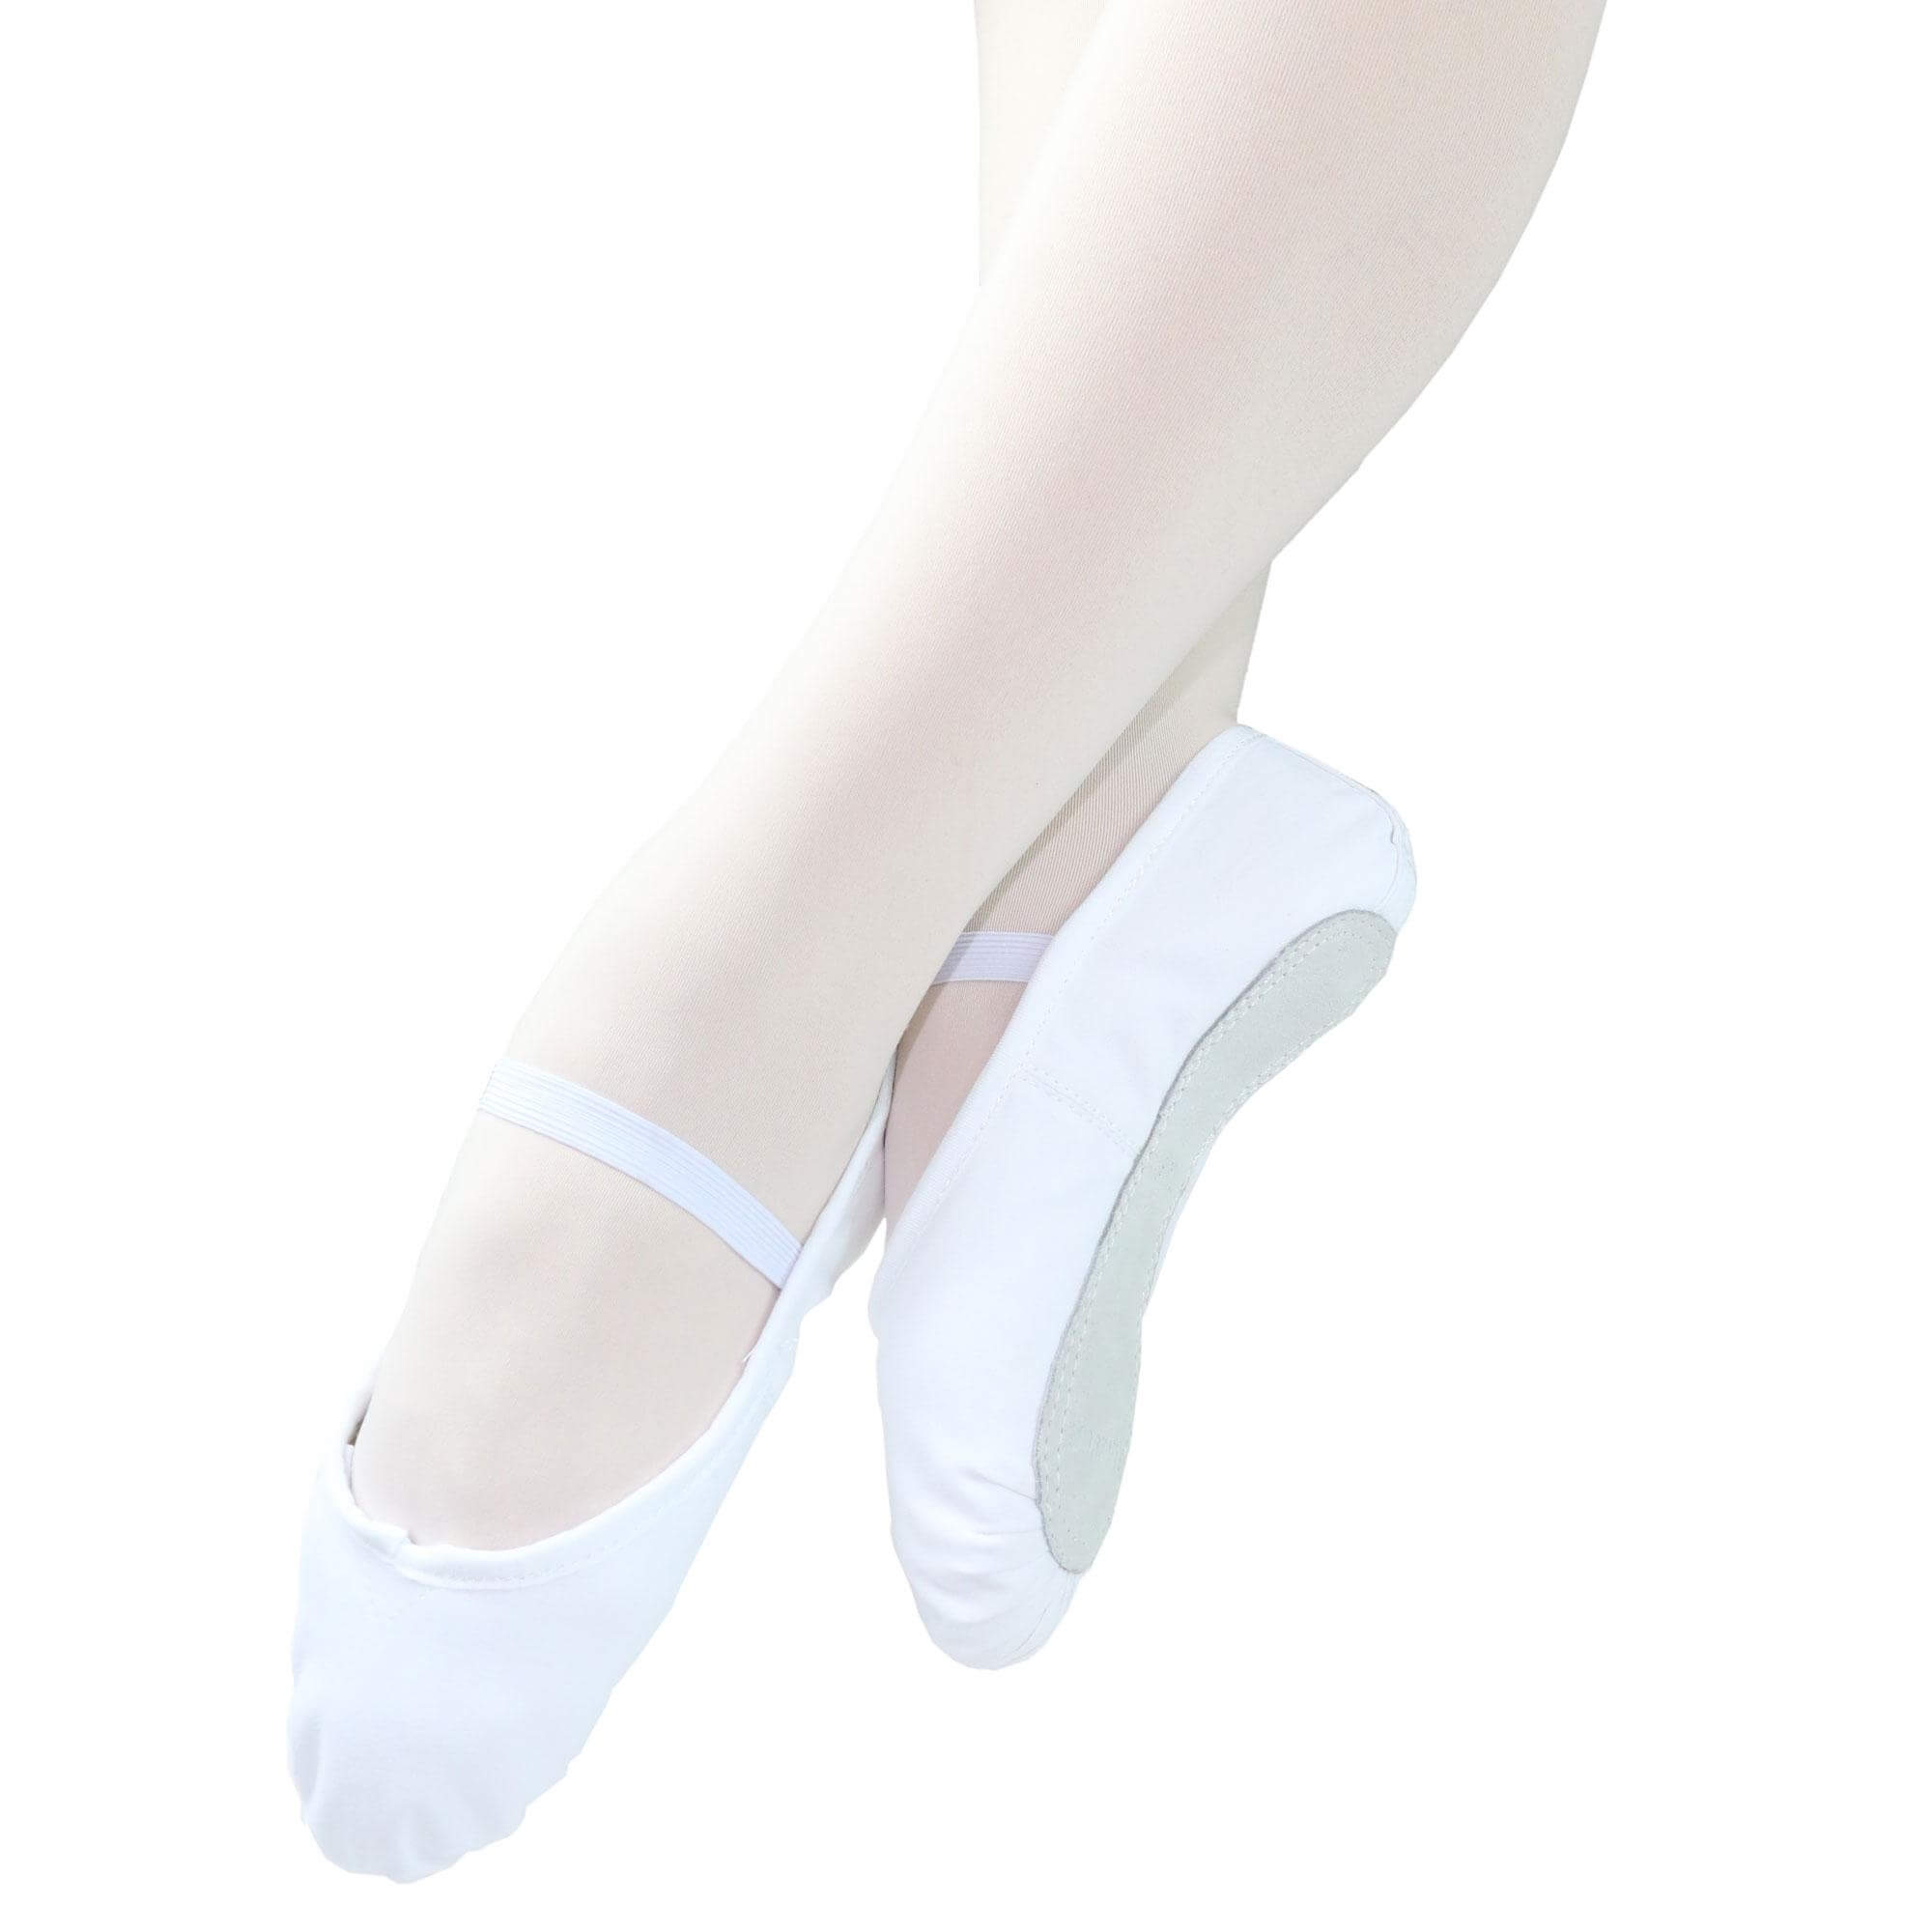 Danzcue Adult Full Sole Canvas Ballet Slipper 1f07697ffde9